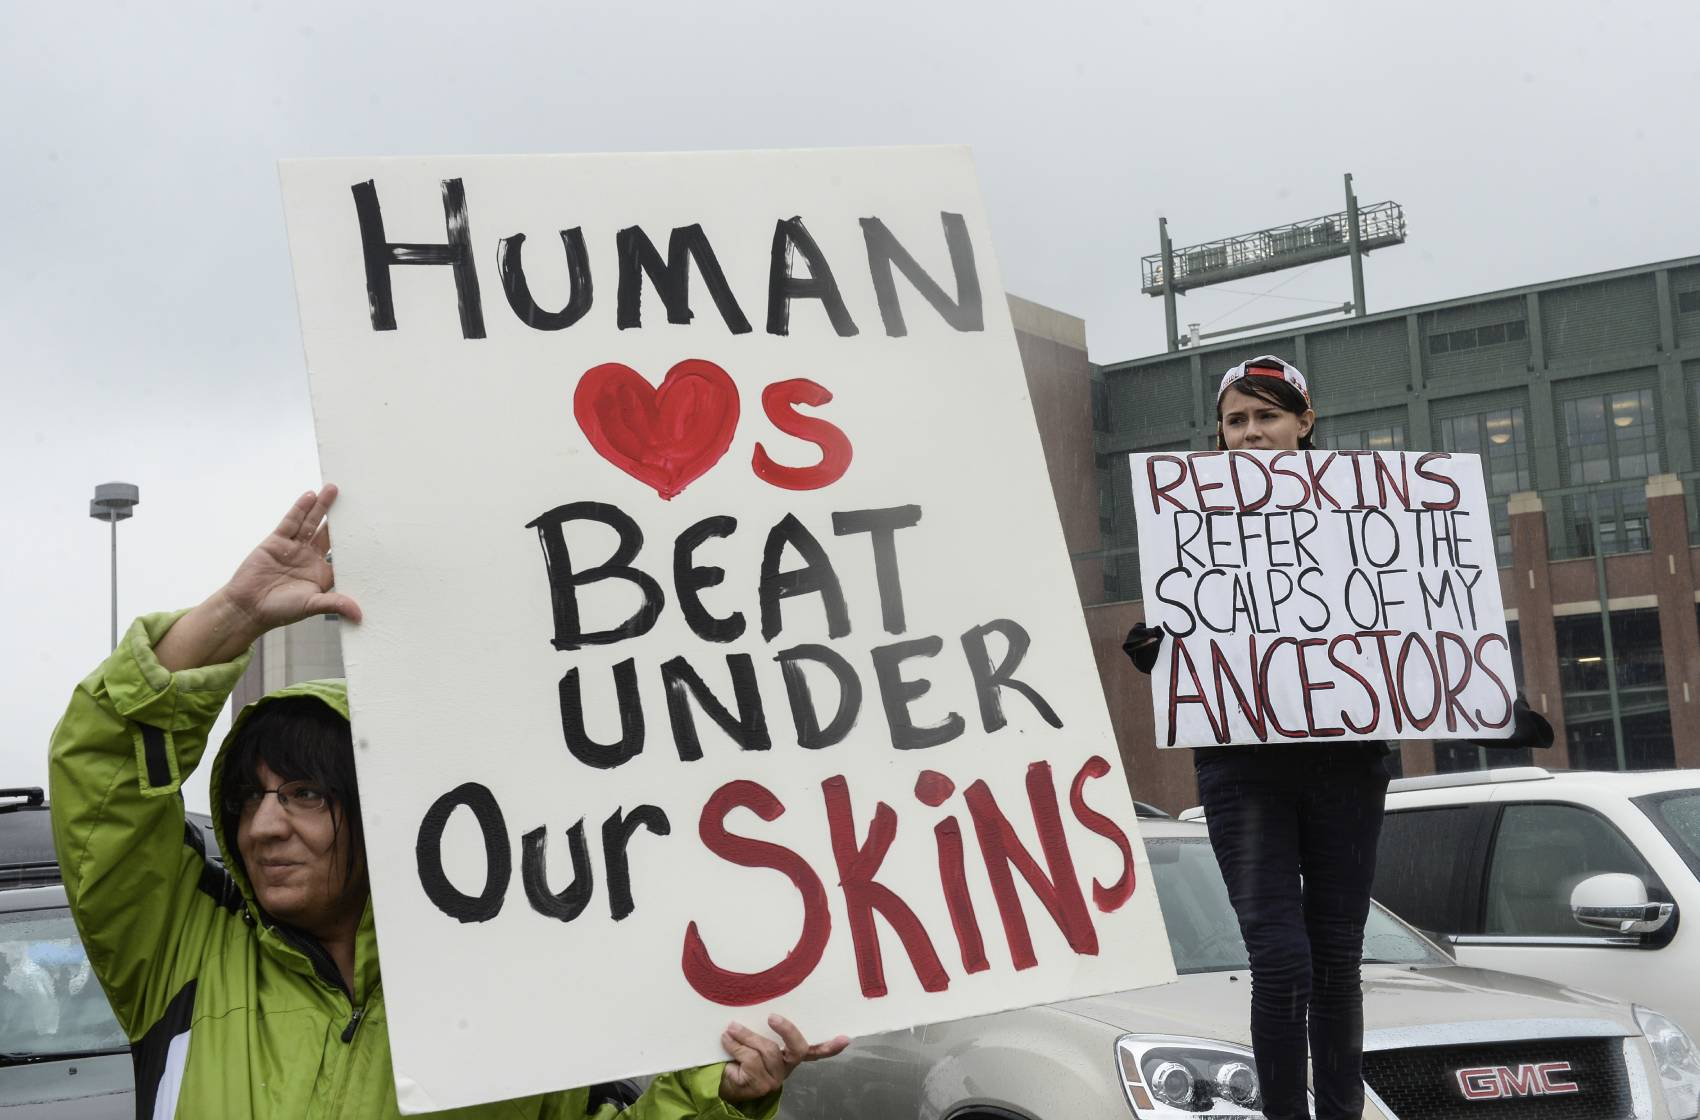 Football fans have protested the Washington Redskins' name for years. Two fans held up these signs before a Redskins-Packers game in 2013.